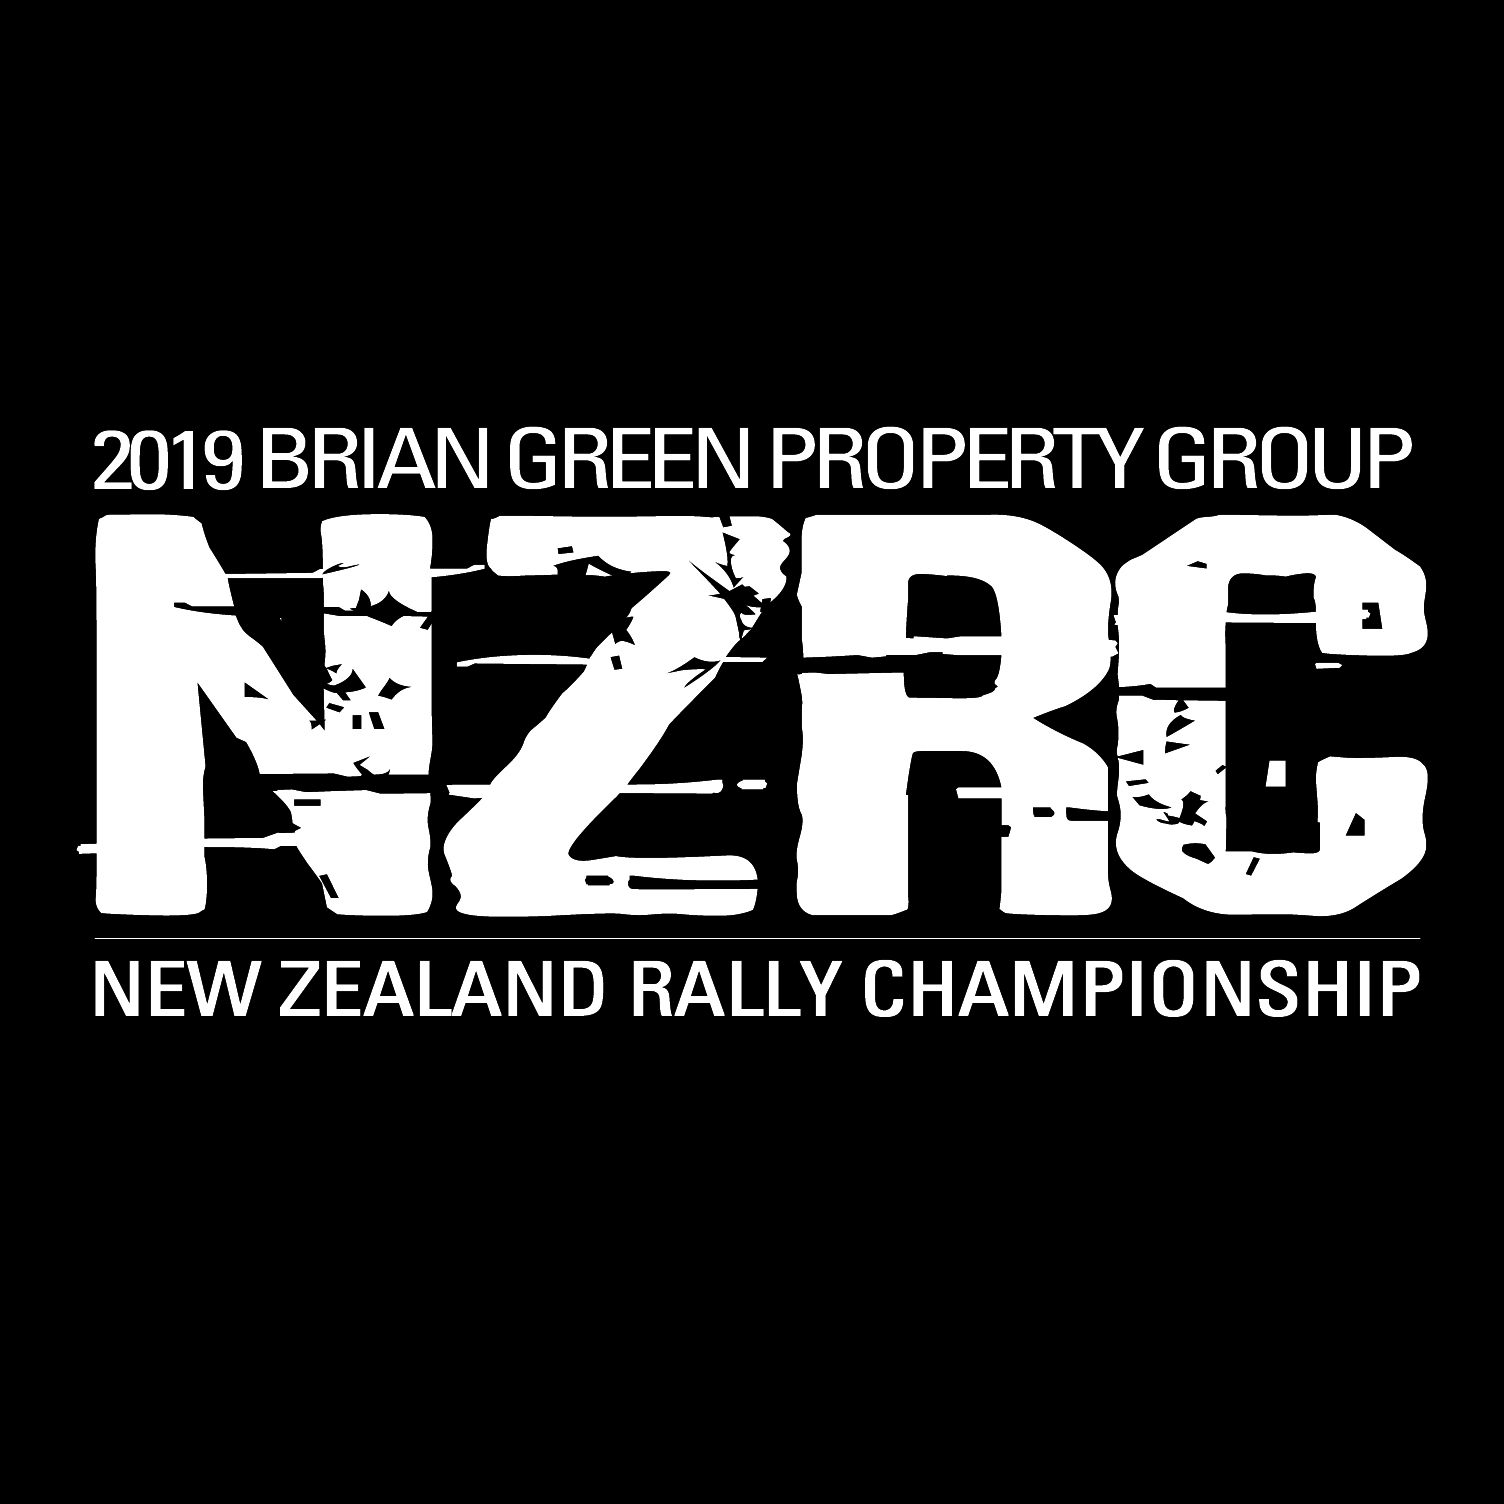 Reeves triumphs at chaotic Coromandel rally | :: Brian Green Property Group New Zealand Rally Championship ::